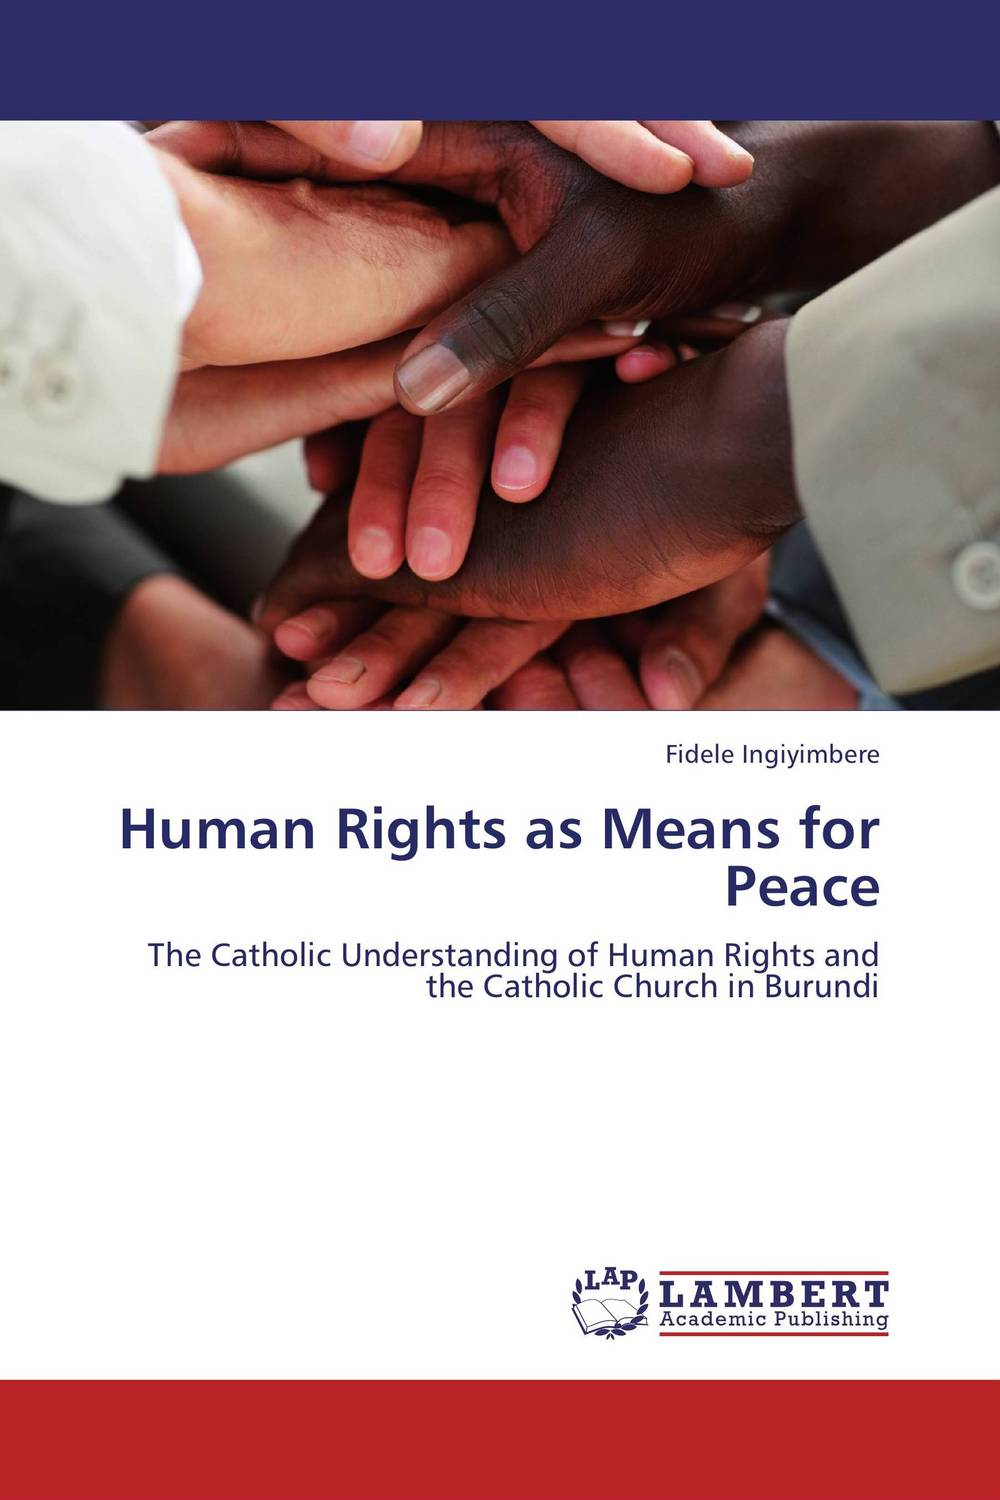 Human Rights as Means for Peace the application of global ethics to solve local improprieties